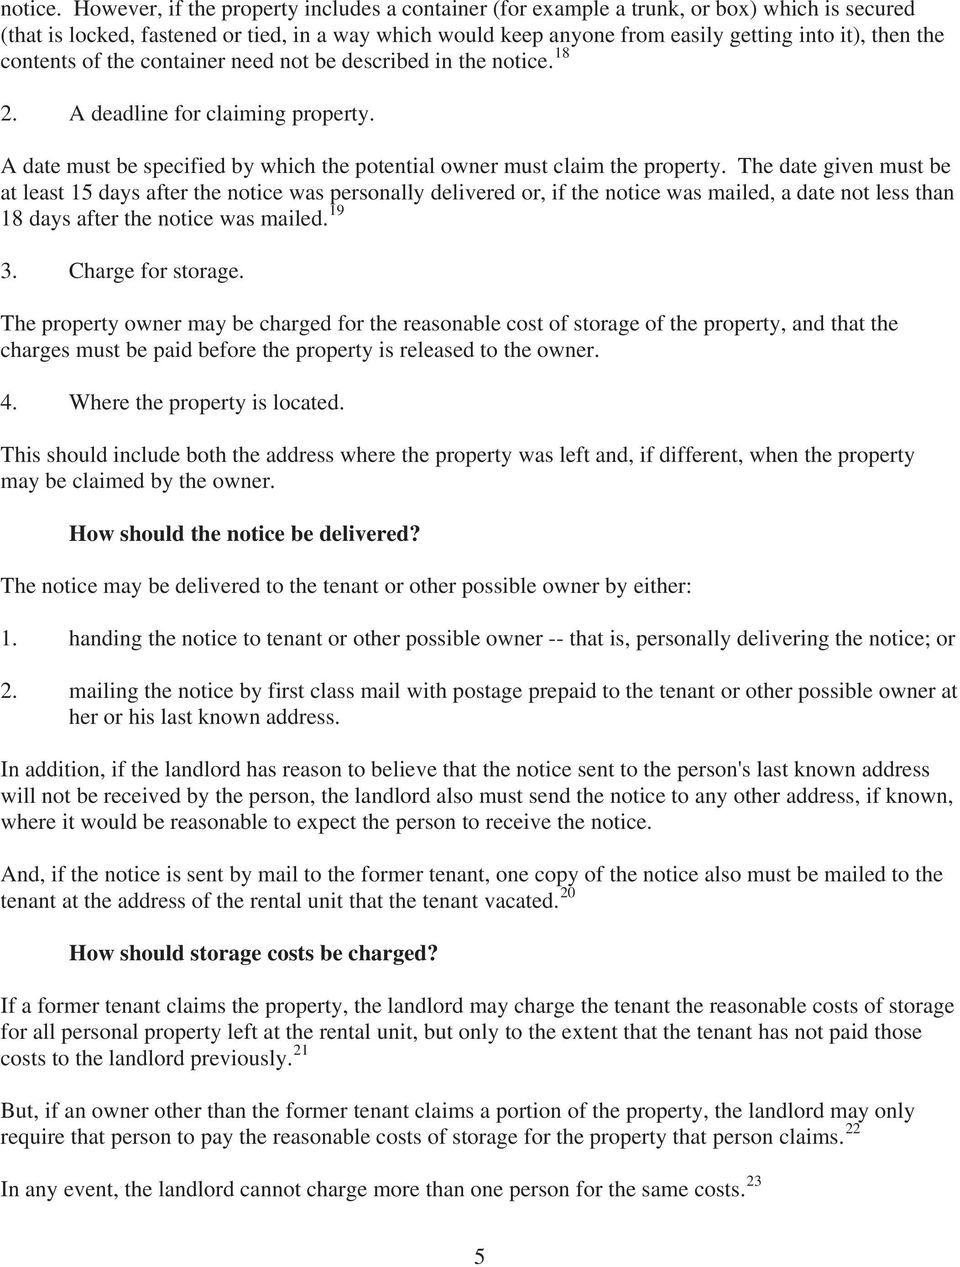 contents of the container need not be described in the  18 2. A deadline for claiming property. A date must be specified by which the potential owner must claim the property.